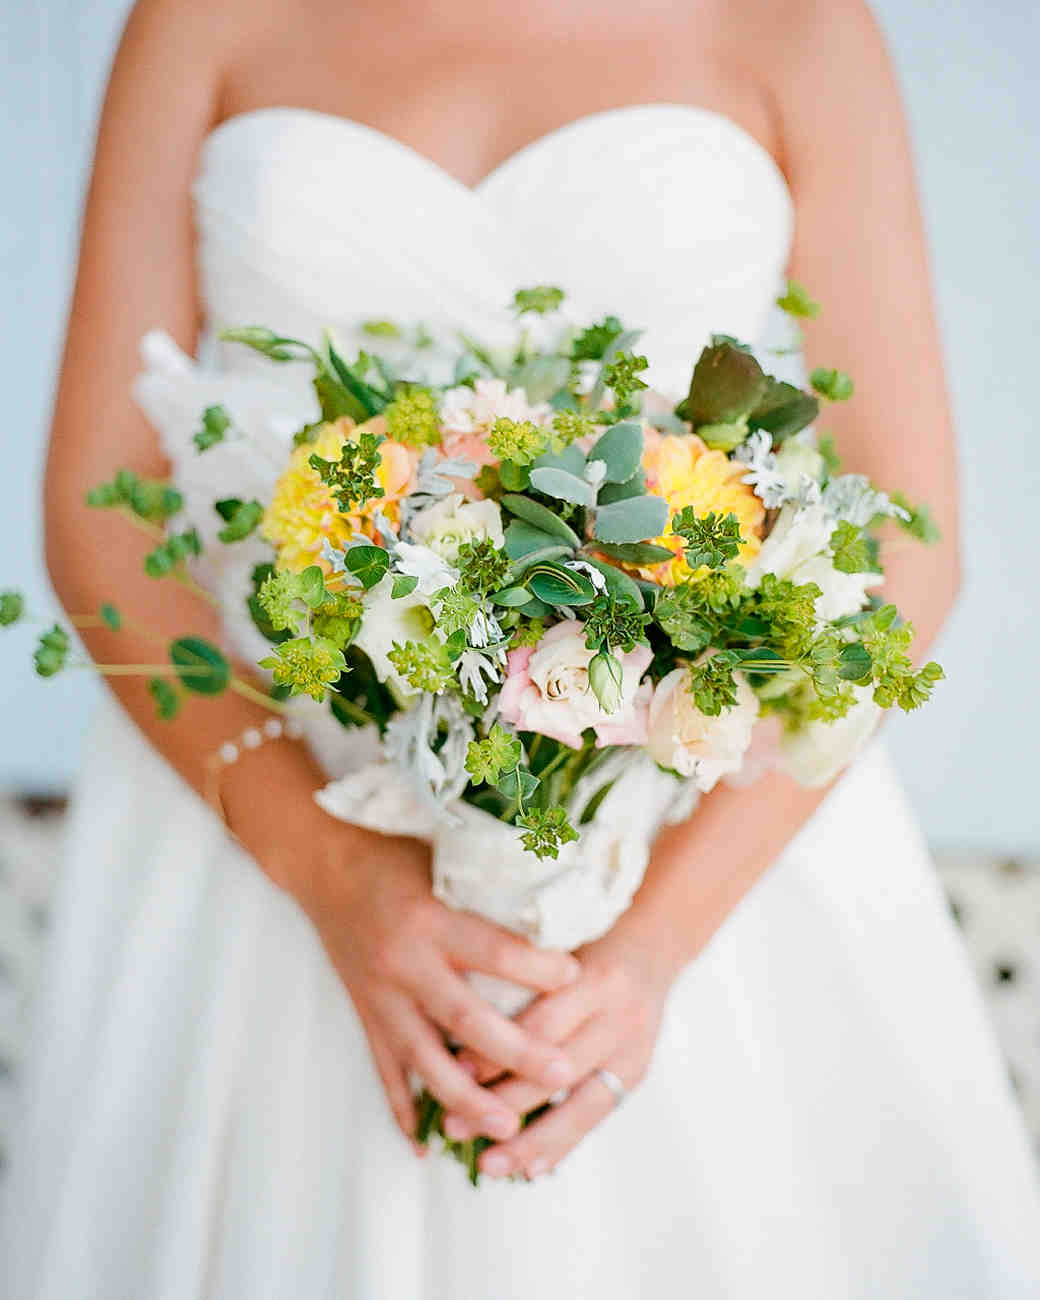 Pink and Yellow Bridal Bouquet with Loose Greenery